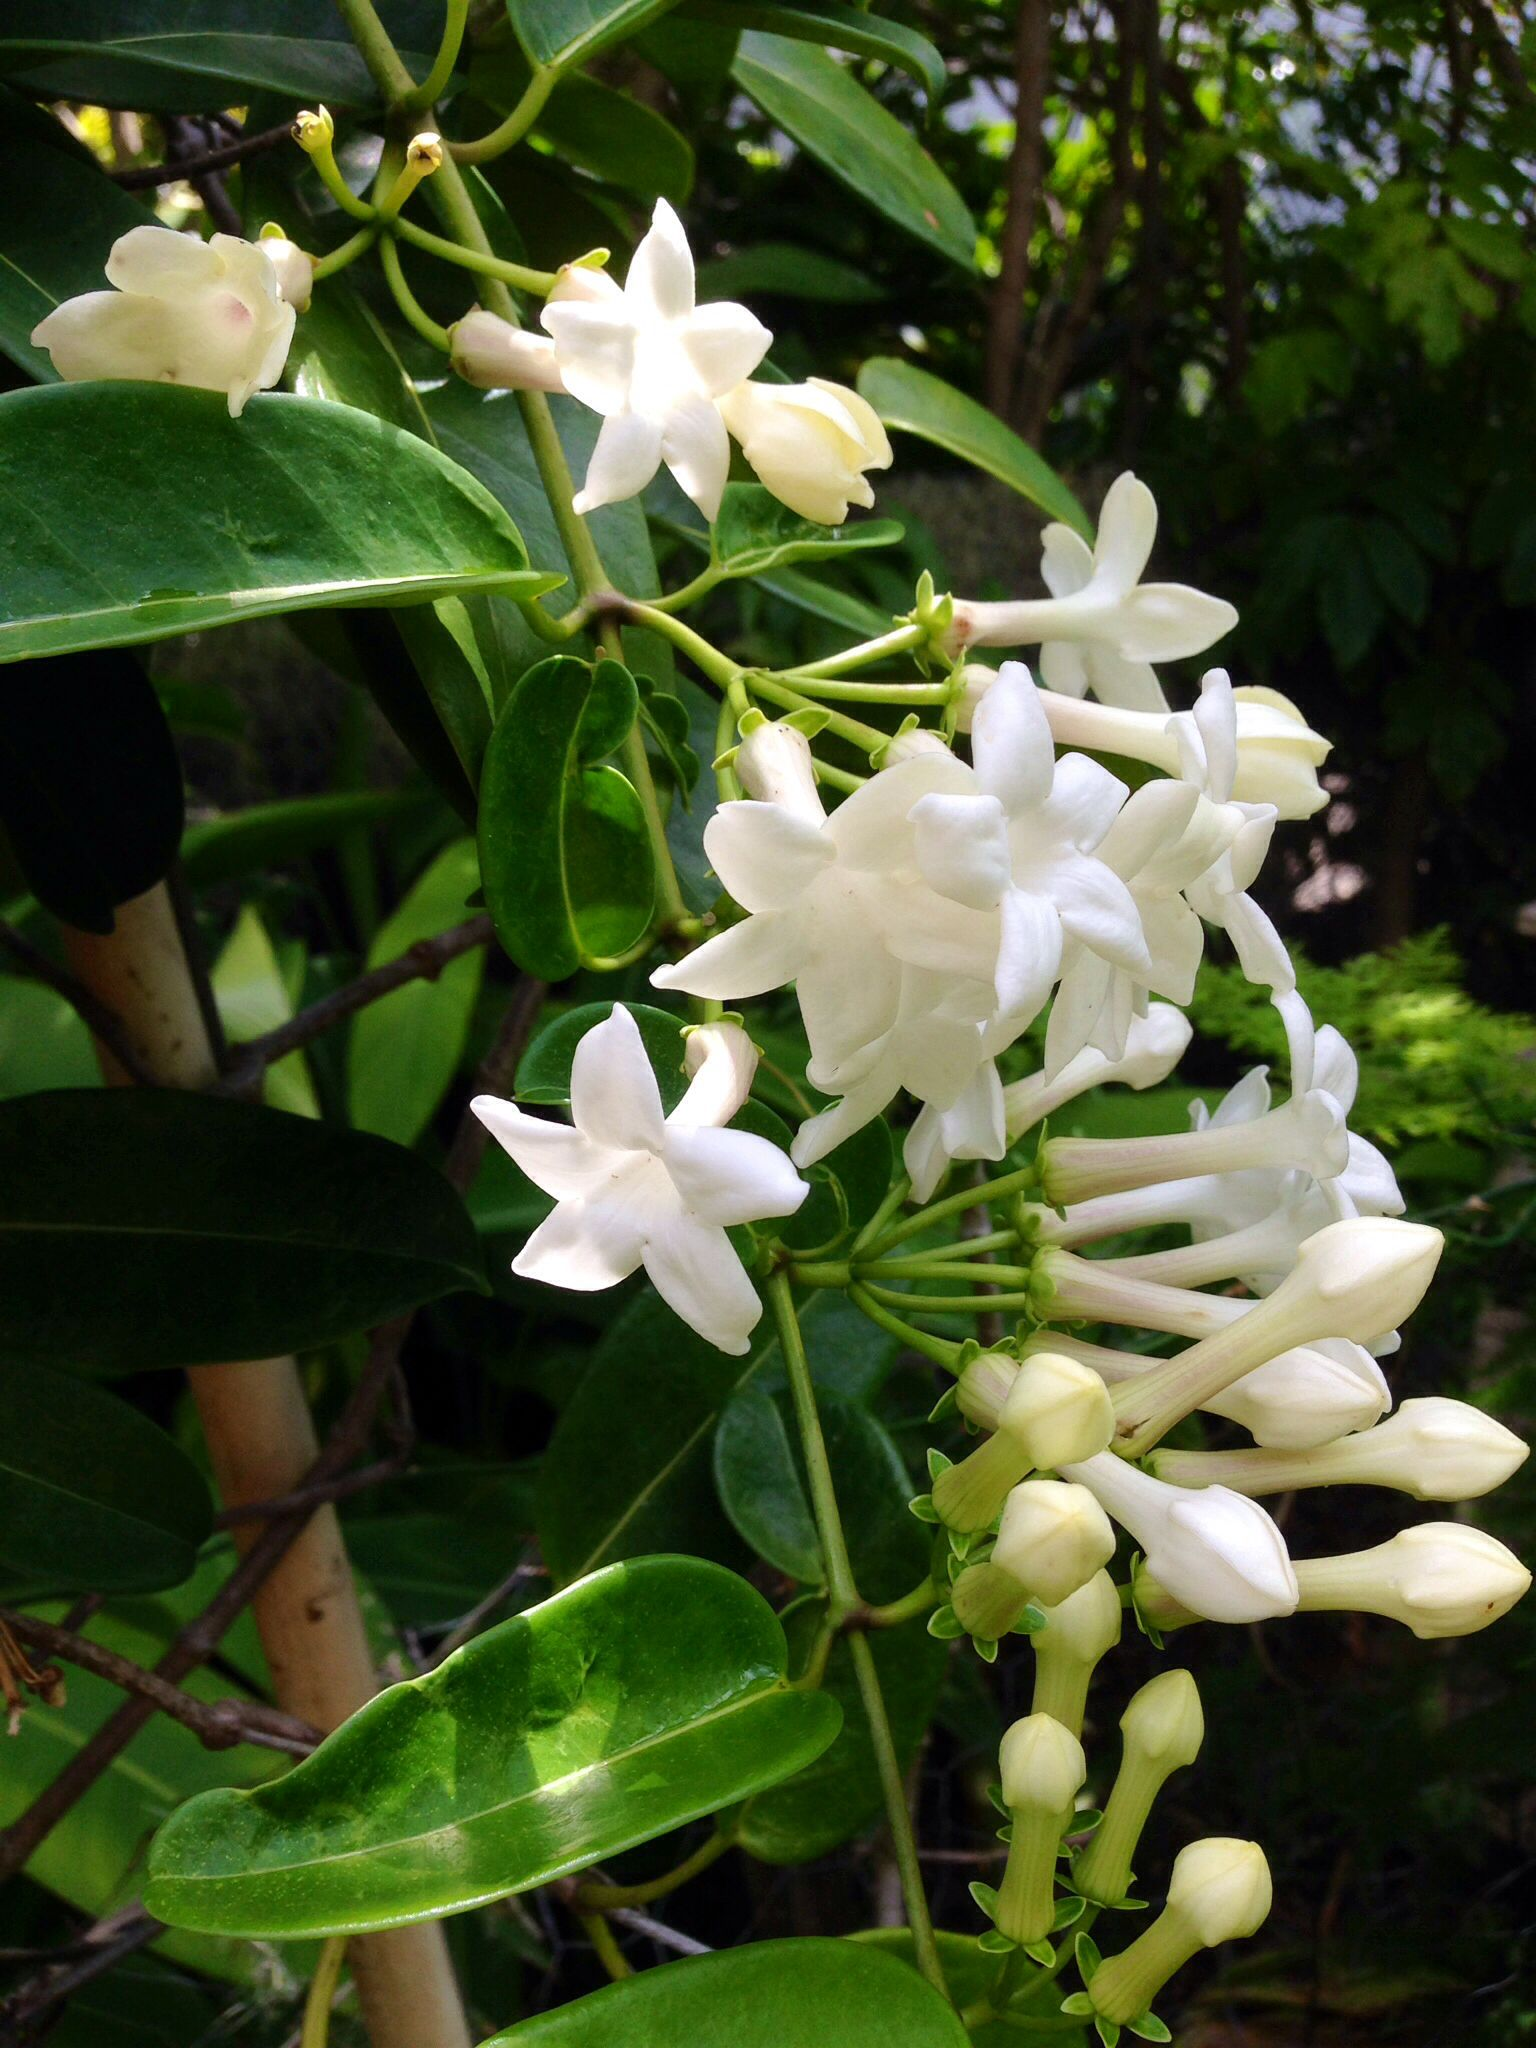 Only In Hawaii Fragrant Stephanoses Blossoms In Manoa Garden